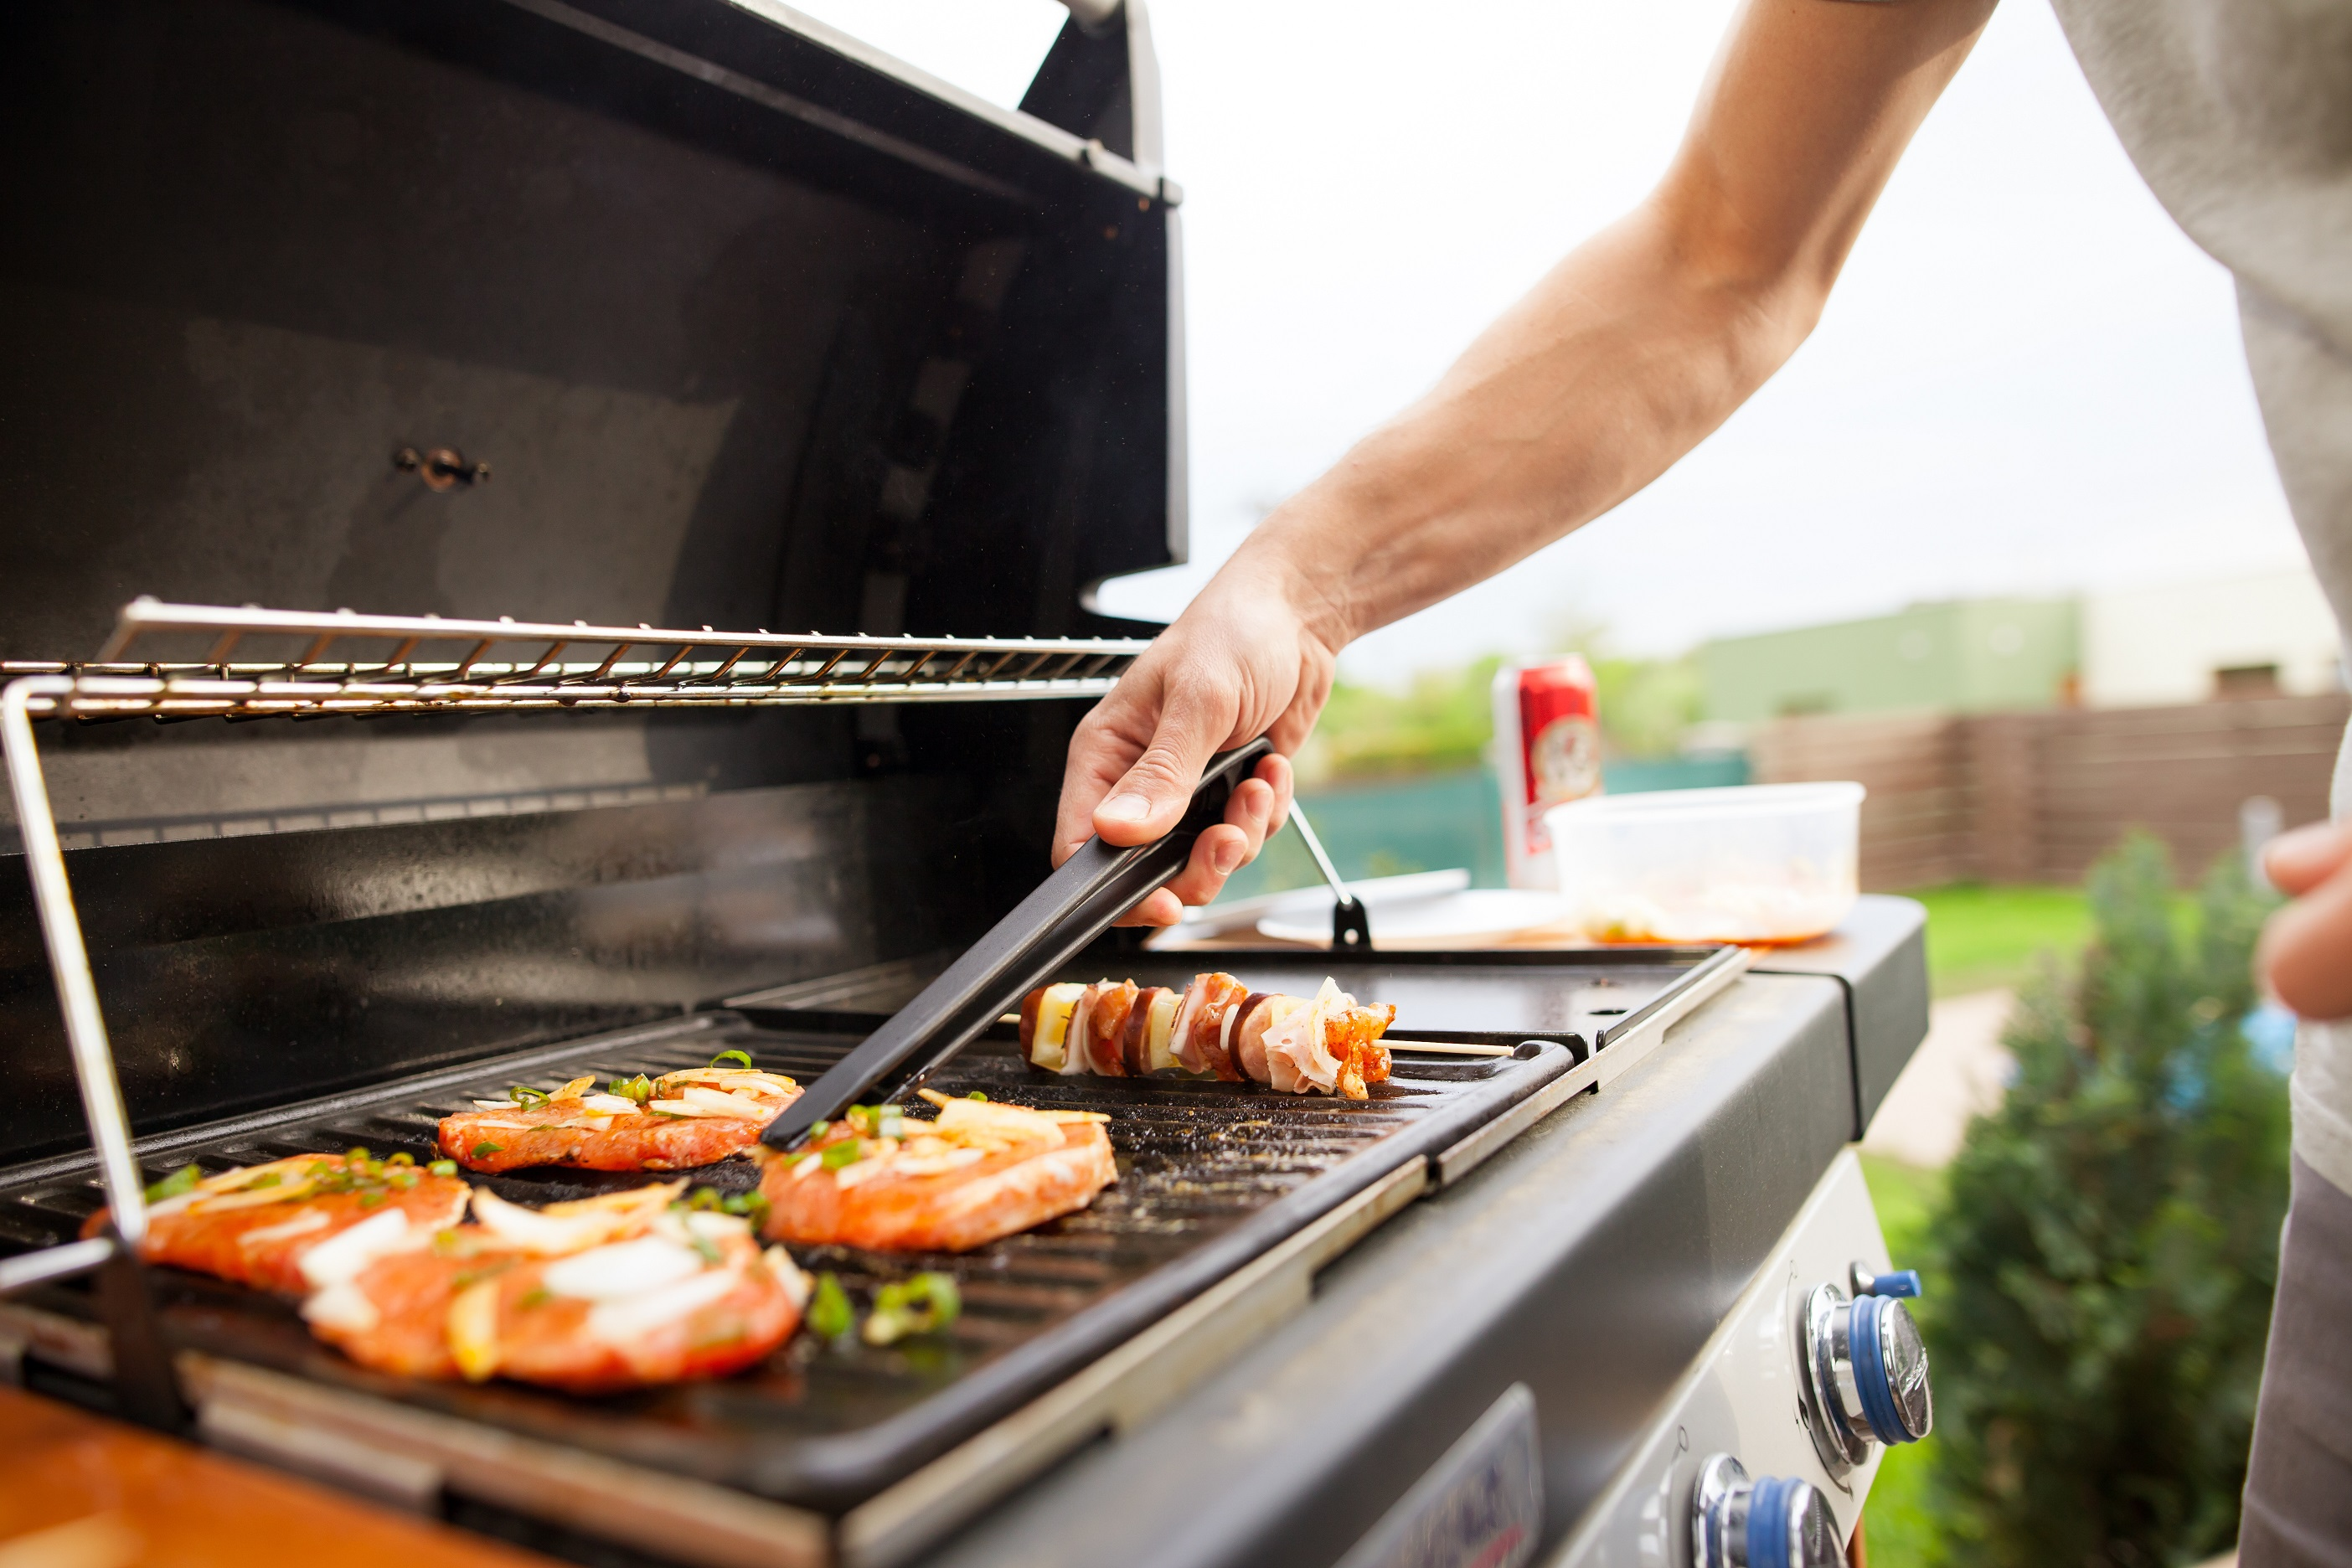 Grilling Safety Video